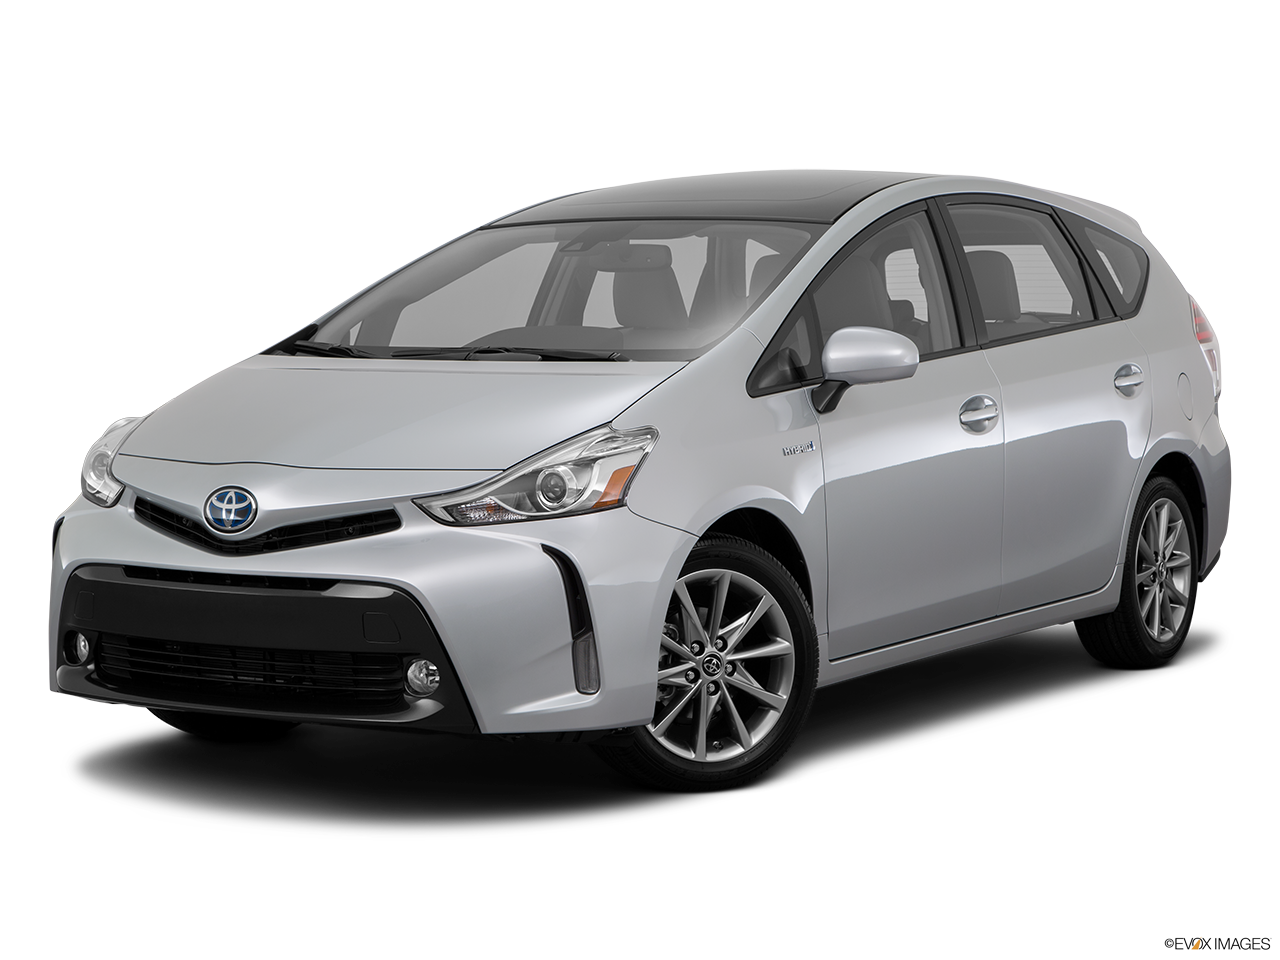 2015 toyota prius v dealer serving los angeles toyota of glendale. Black Bedroom Furniture Sets. Home Design Ideas